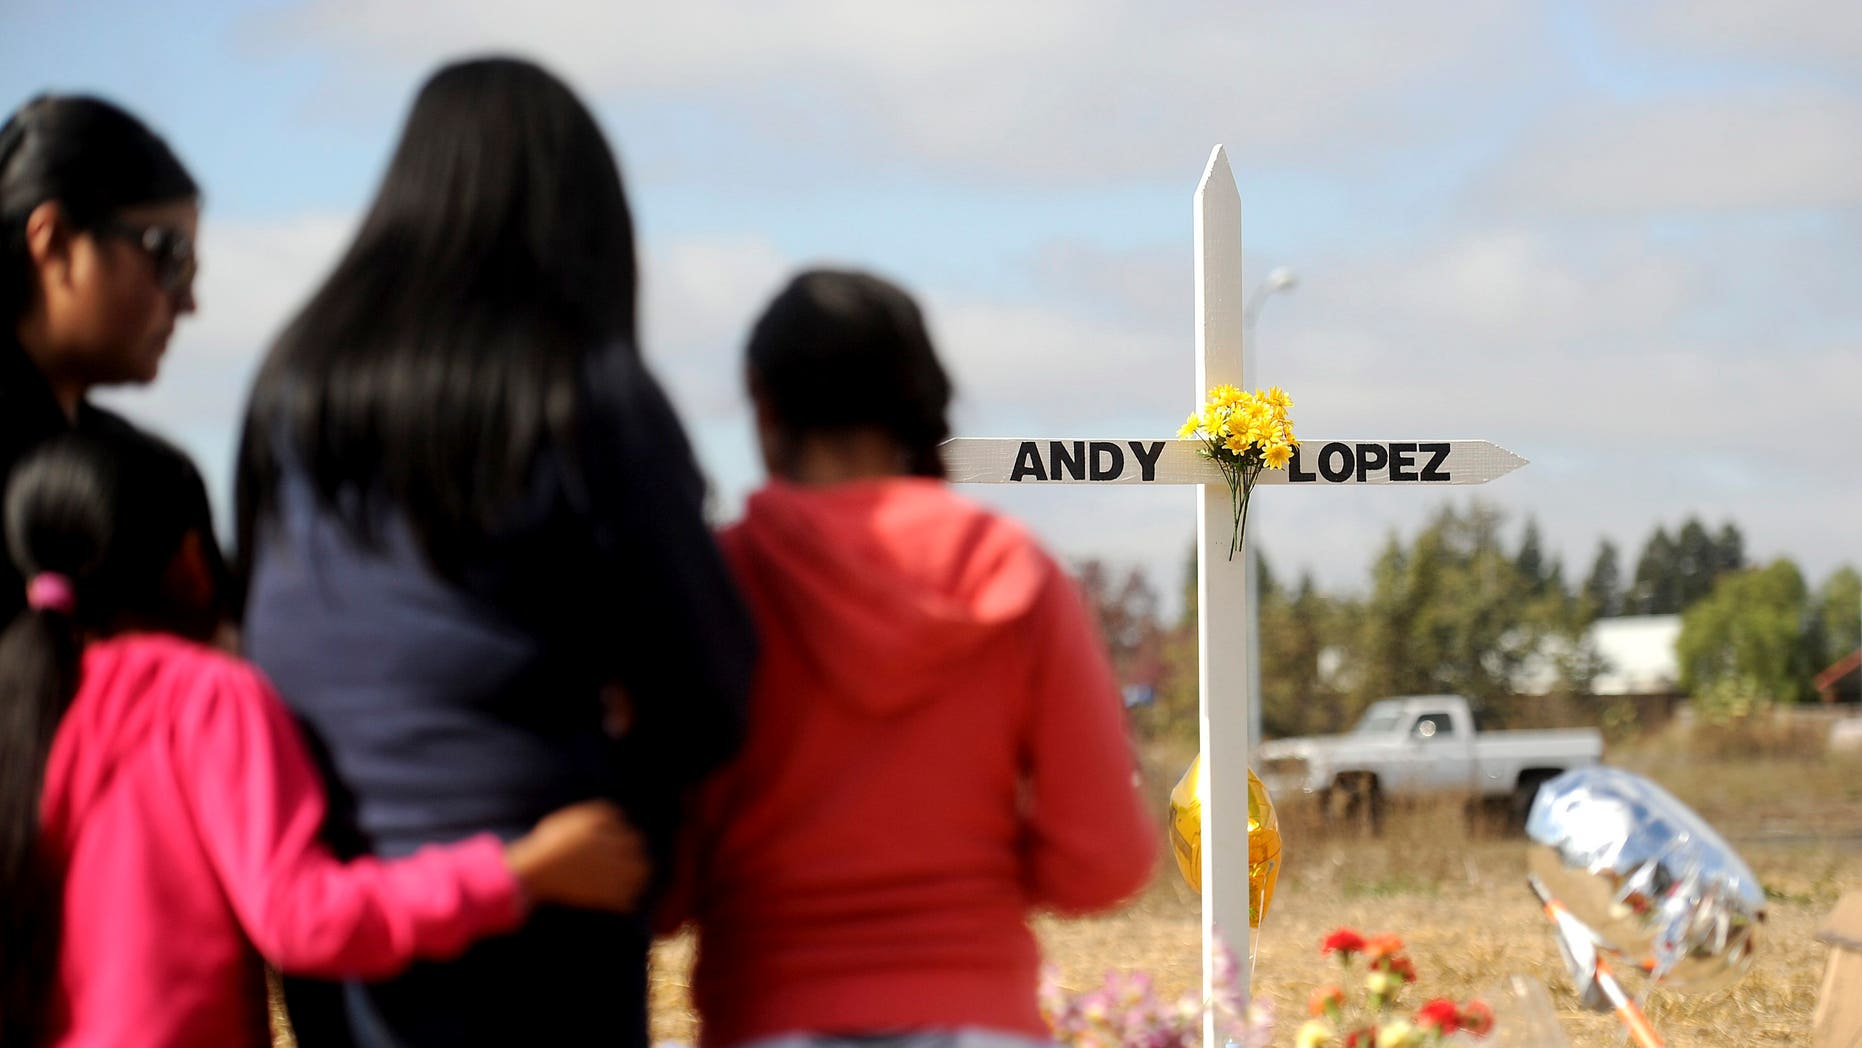 A family pauses at a memorial marking the location where sheriff's deputies shot and killed 13-year-old Andy Lopez in Santa Rosa, California, October 27, 2013.